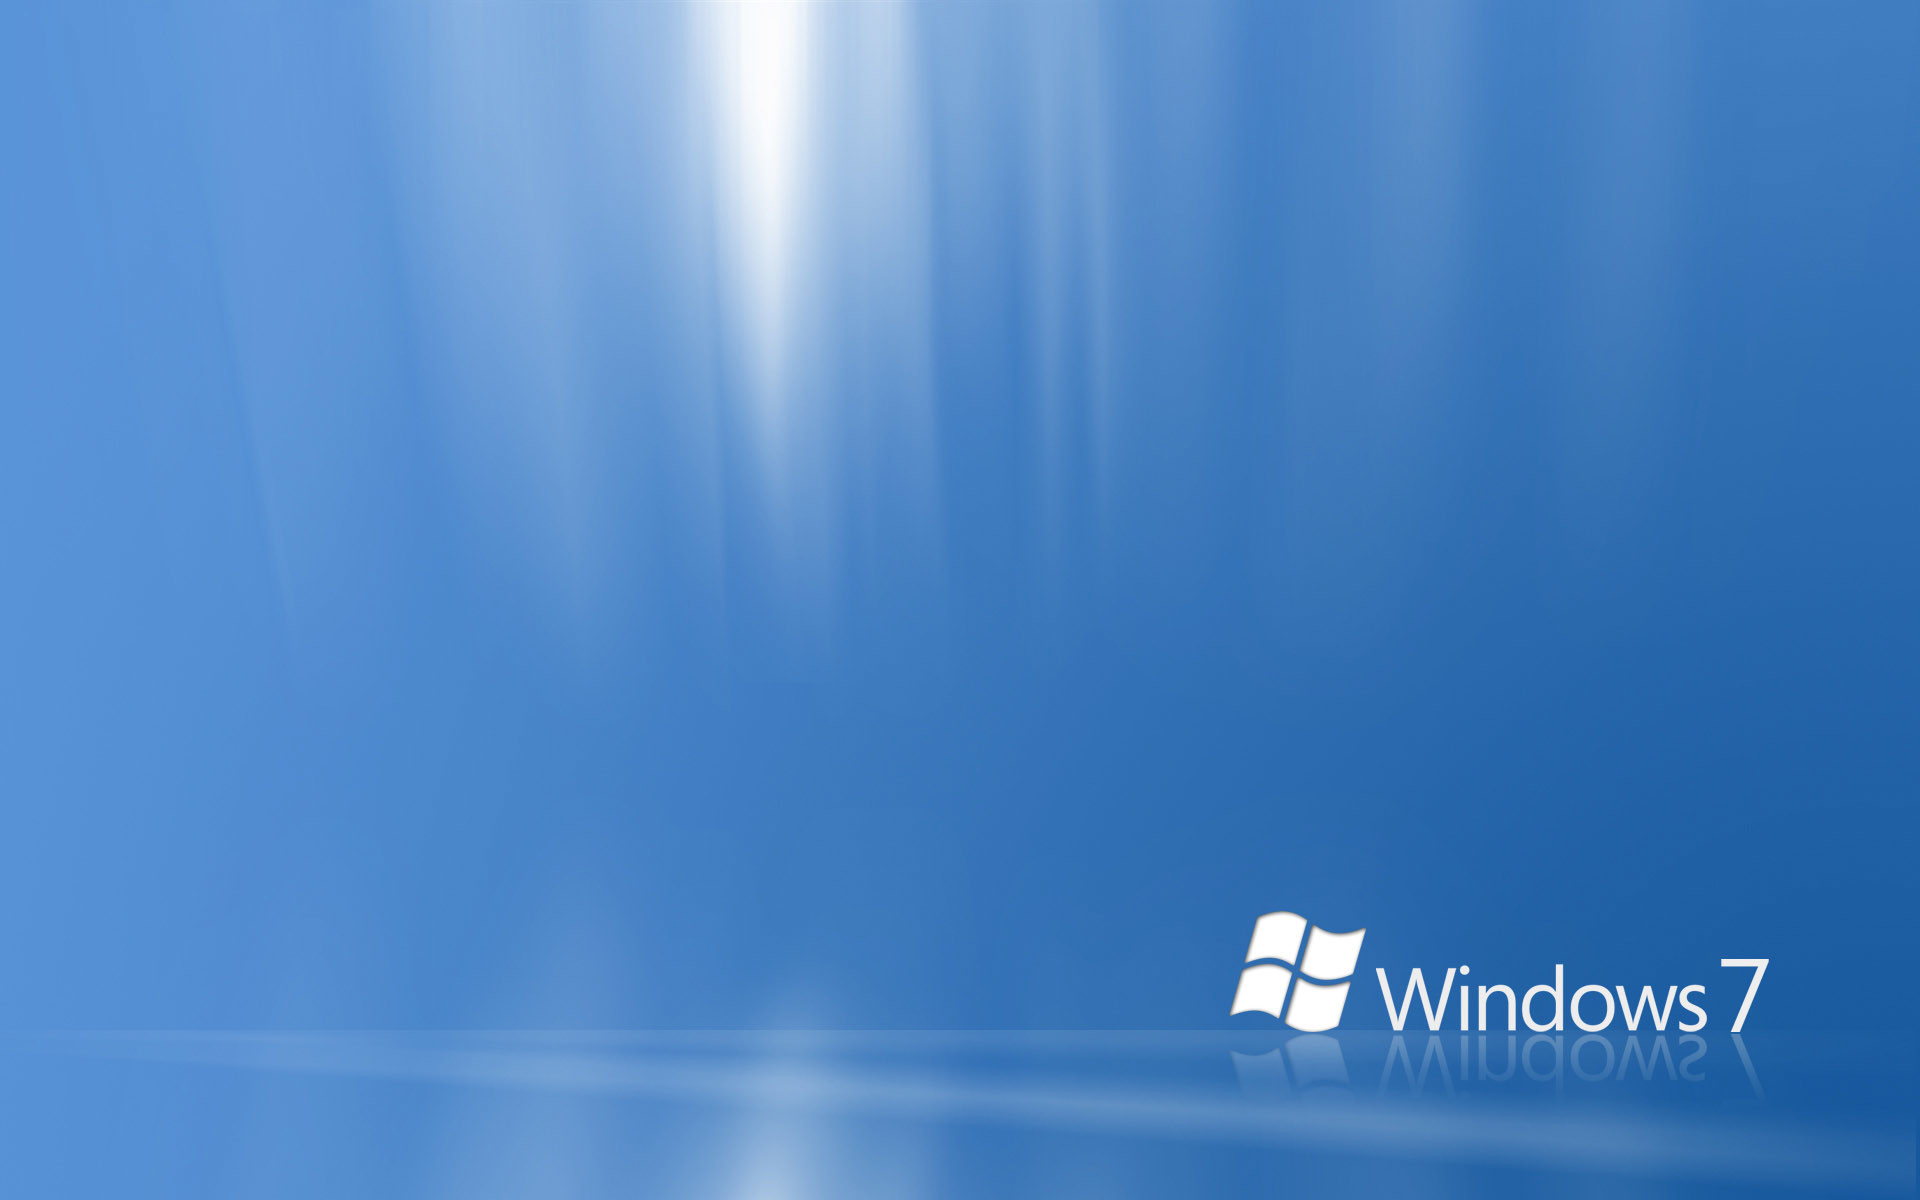 Technology Management Image: Windows 7 Ultimate Wallpaper HD (50+ Images